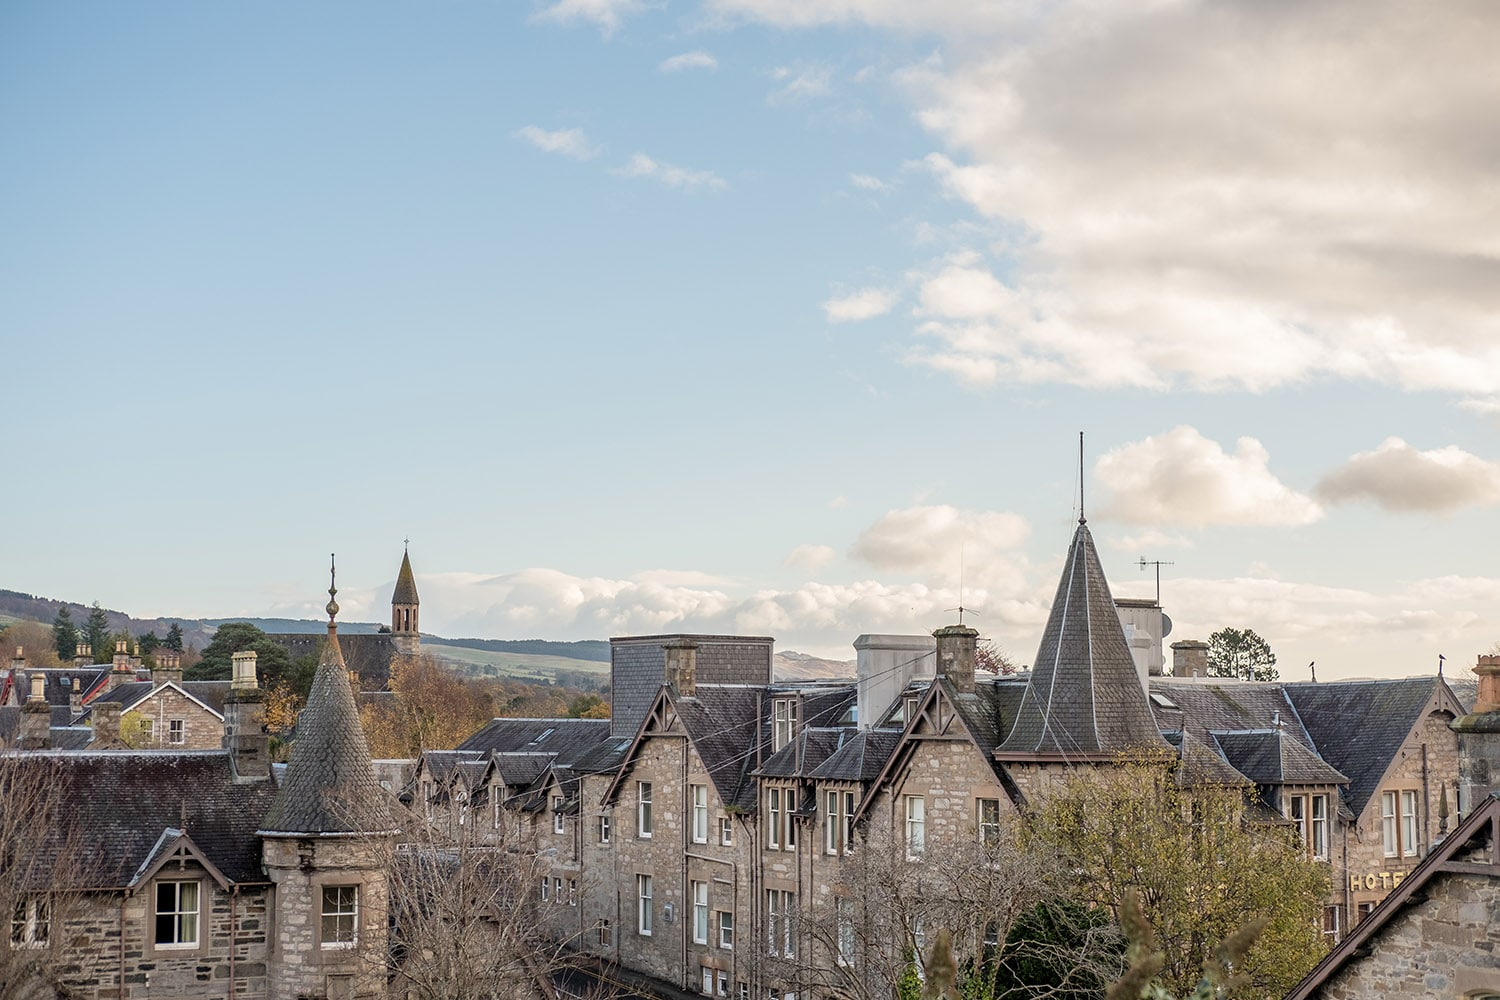 The village of Pitlochry in Perthshire, a lovely place to visit on a private tour of Scotland